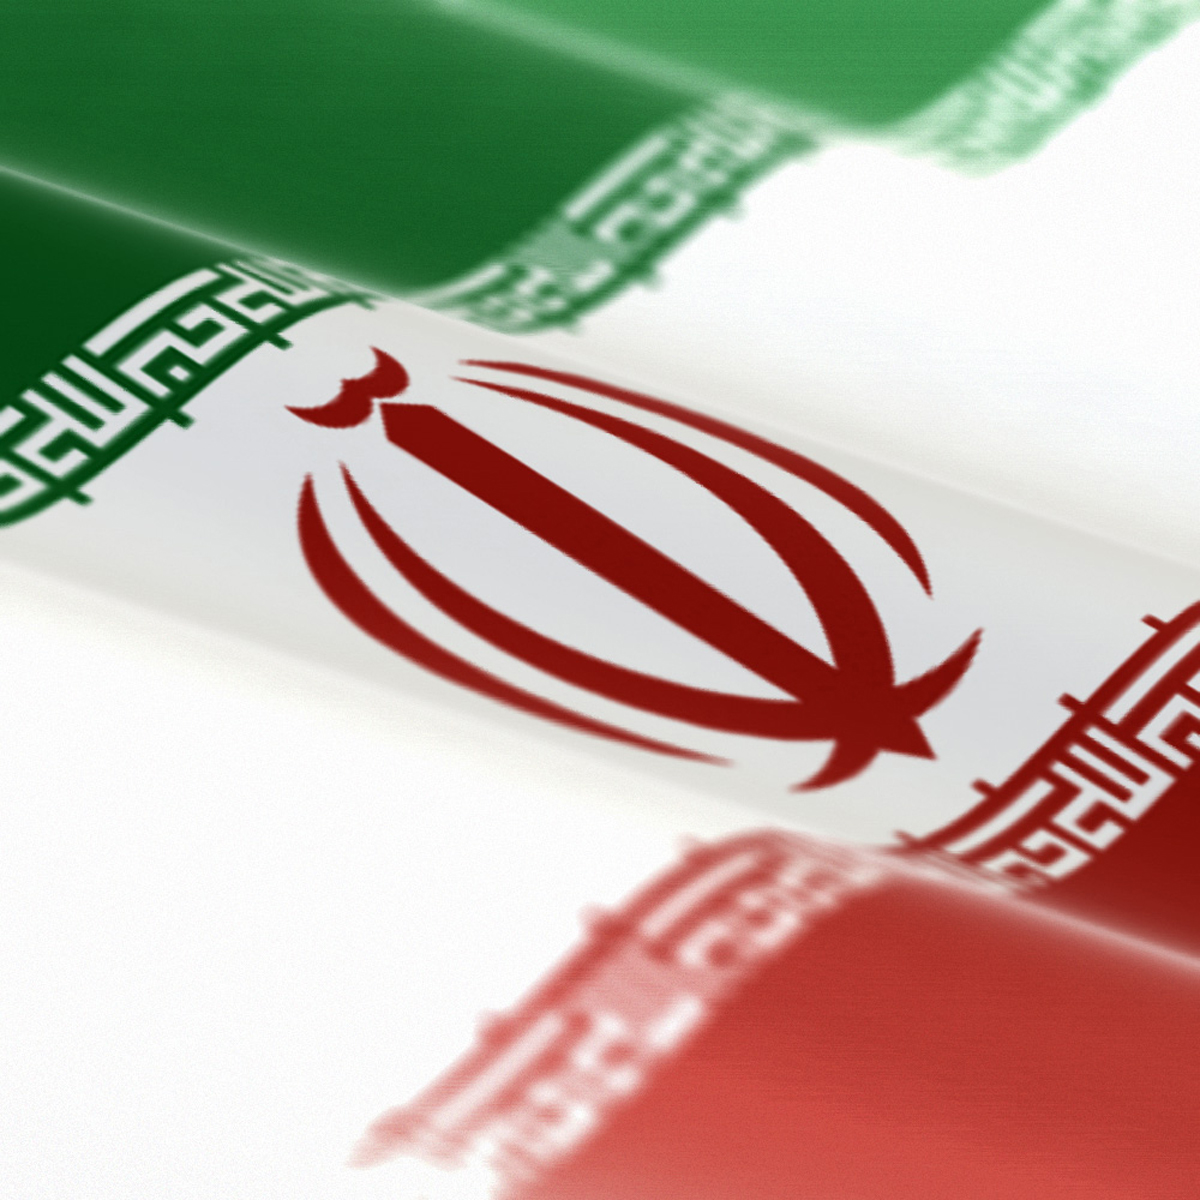 http://2.bp.blogspot.com/-h7XUYaODsSo/TdSQsfxePcI/AAAAAAAABD4/NGQBcSwVfJs/s1600/Wallpapers+Flag+of+Iran+Persian+Flag+Graphics+%25283%2529.jpg